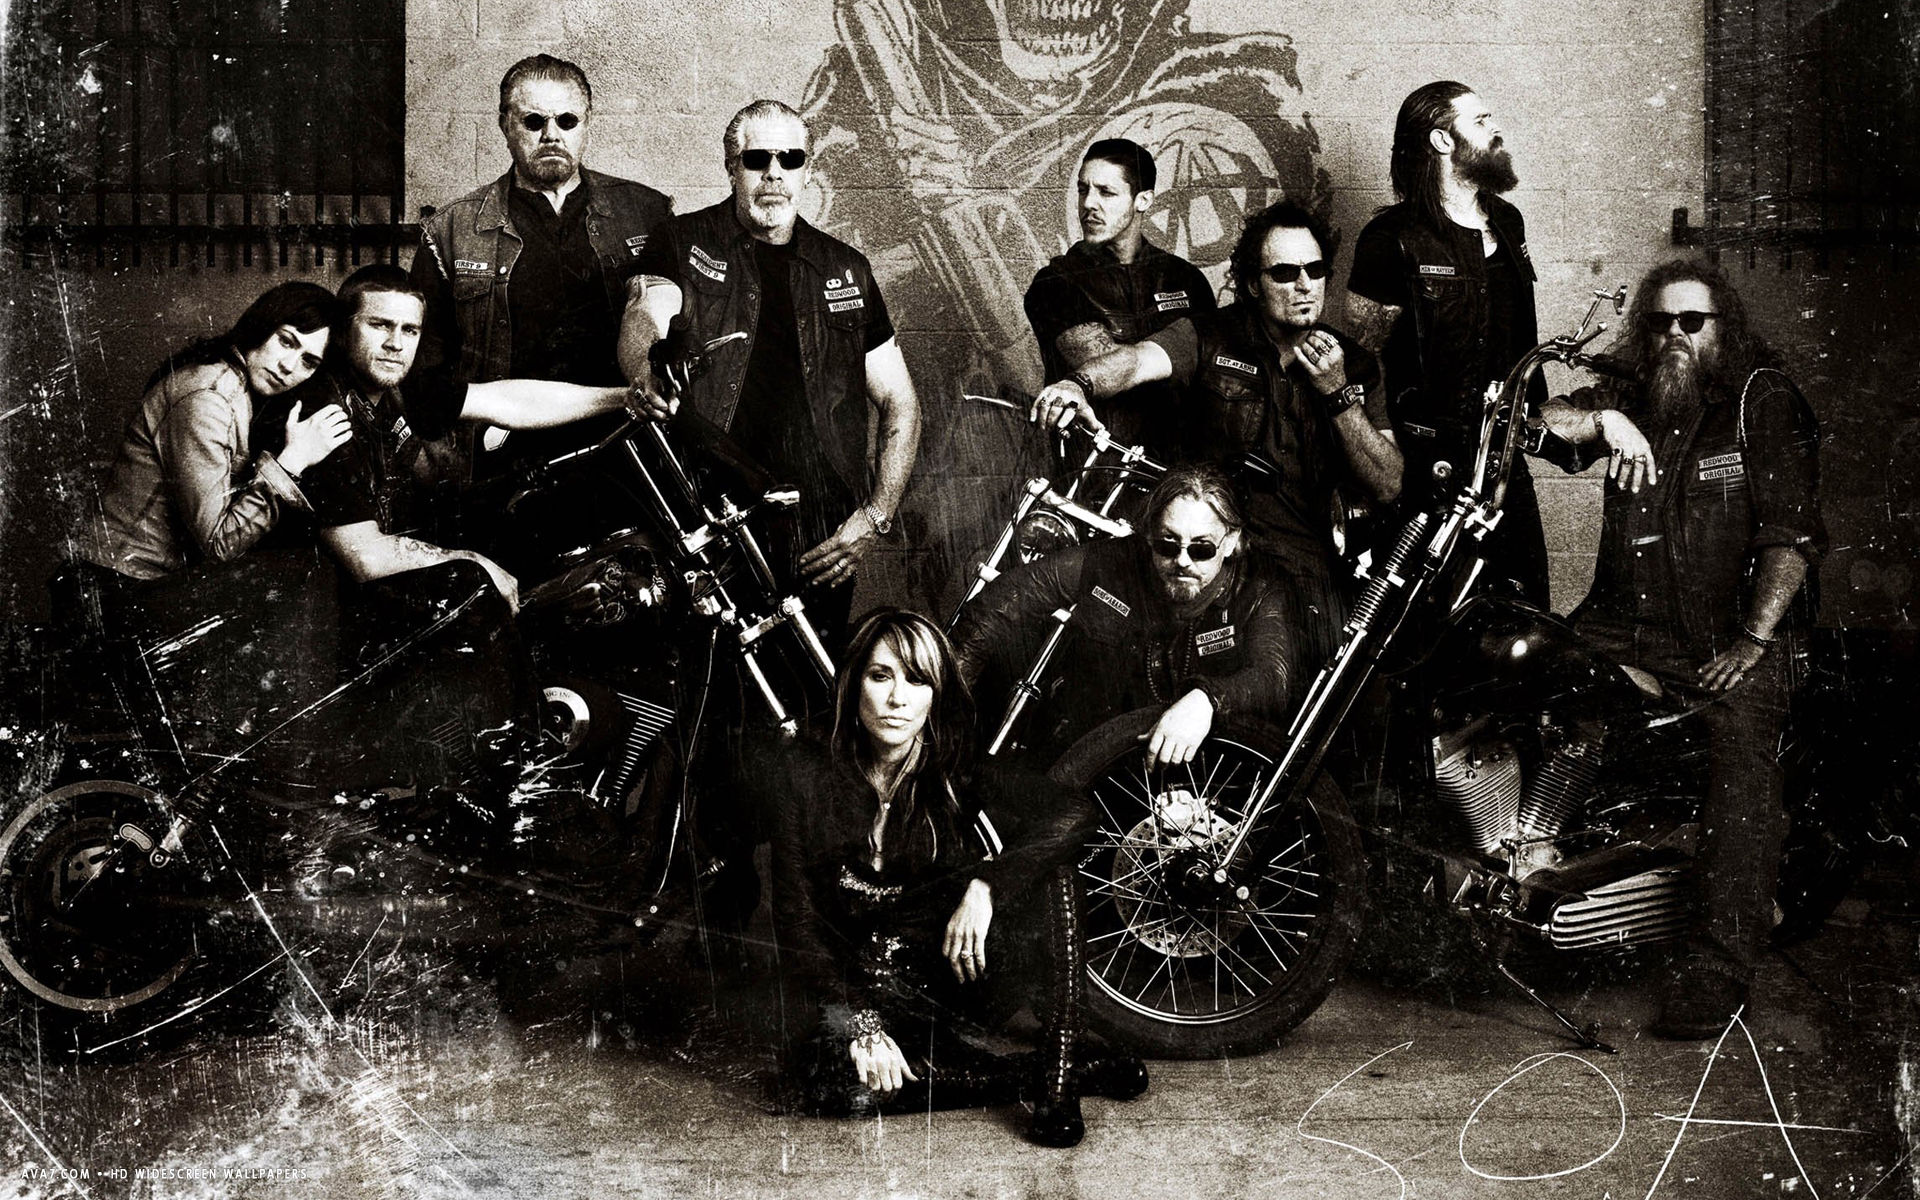 Sons Of Anarchy Wallpaper 1920x1200 73711